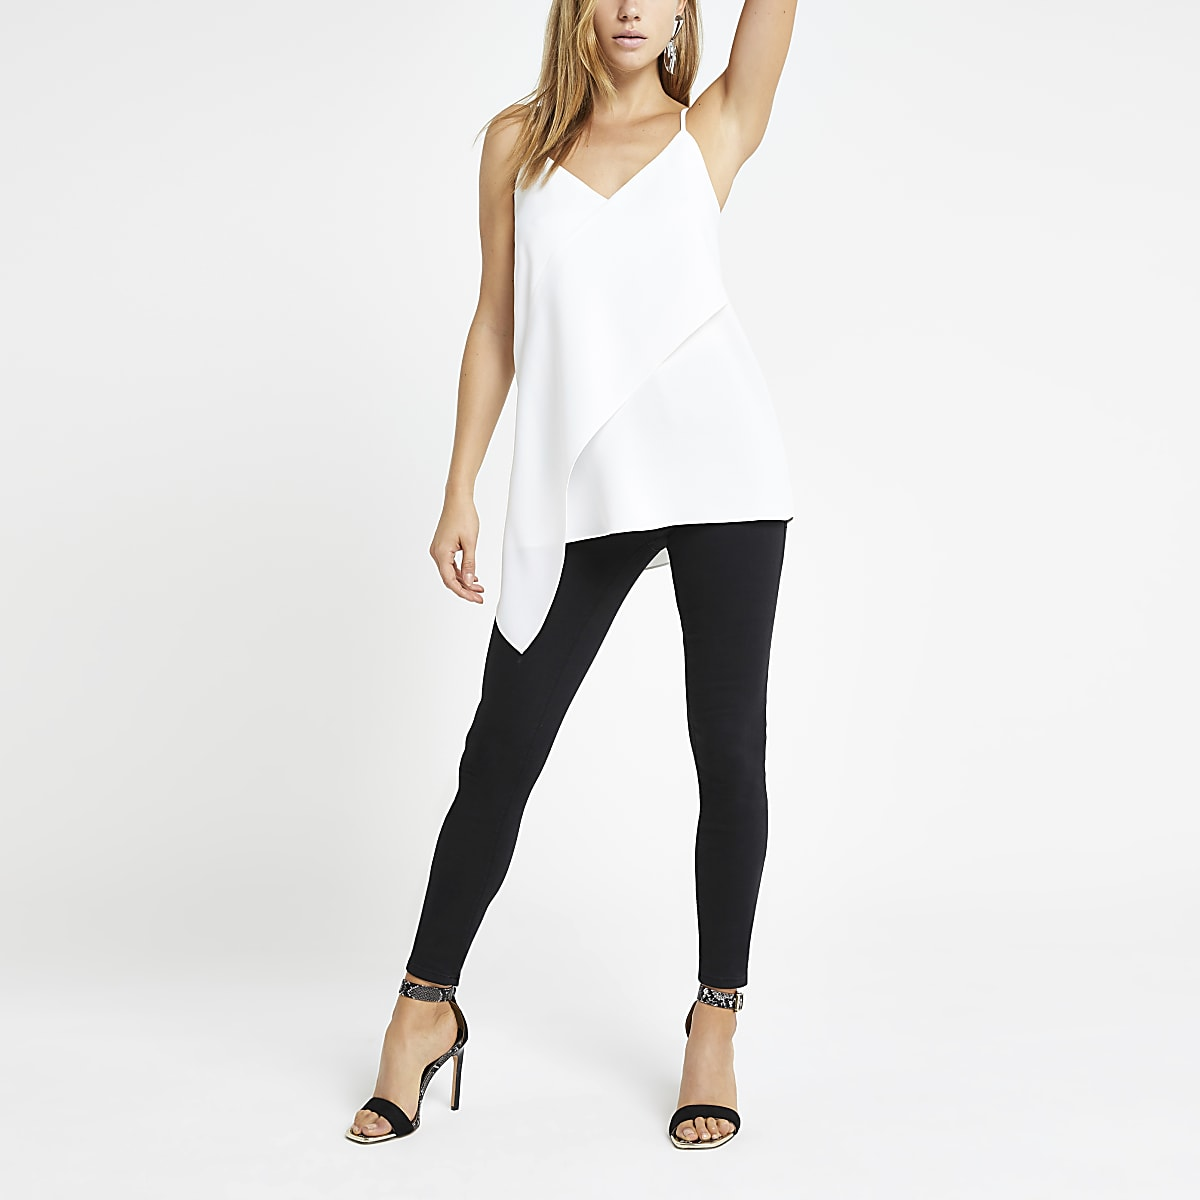 White frill cami top